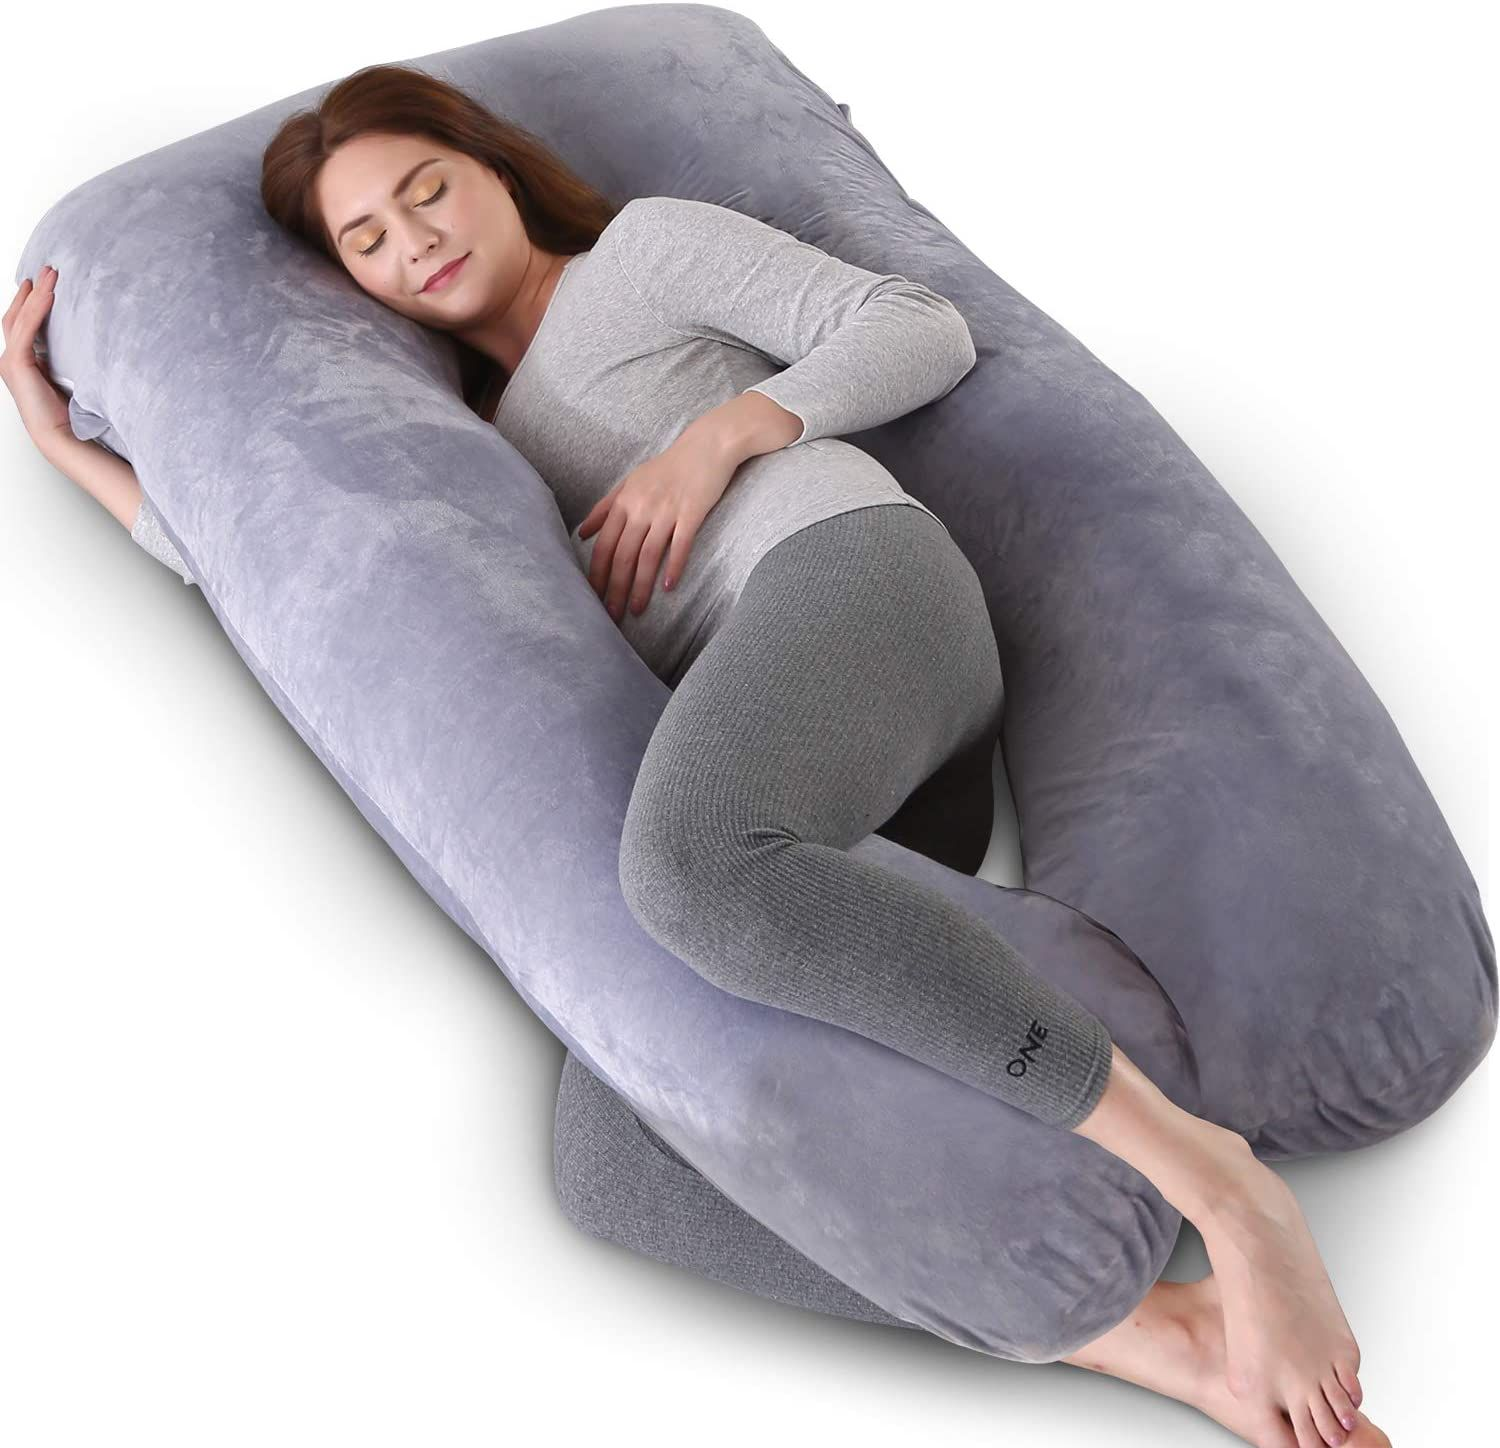 Pin On Best Pregnancy Body Pillows Amazon Com